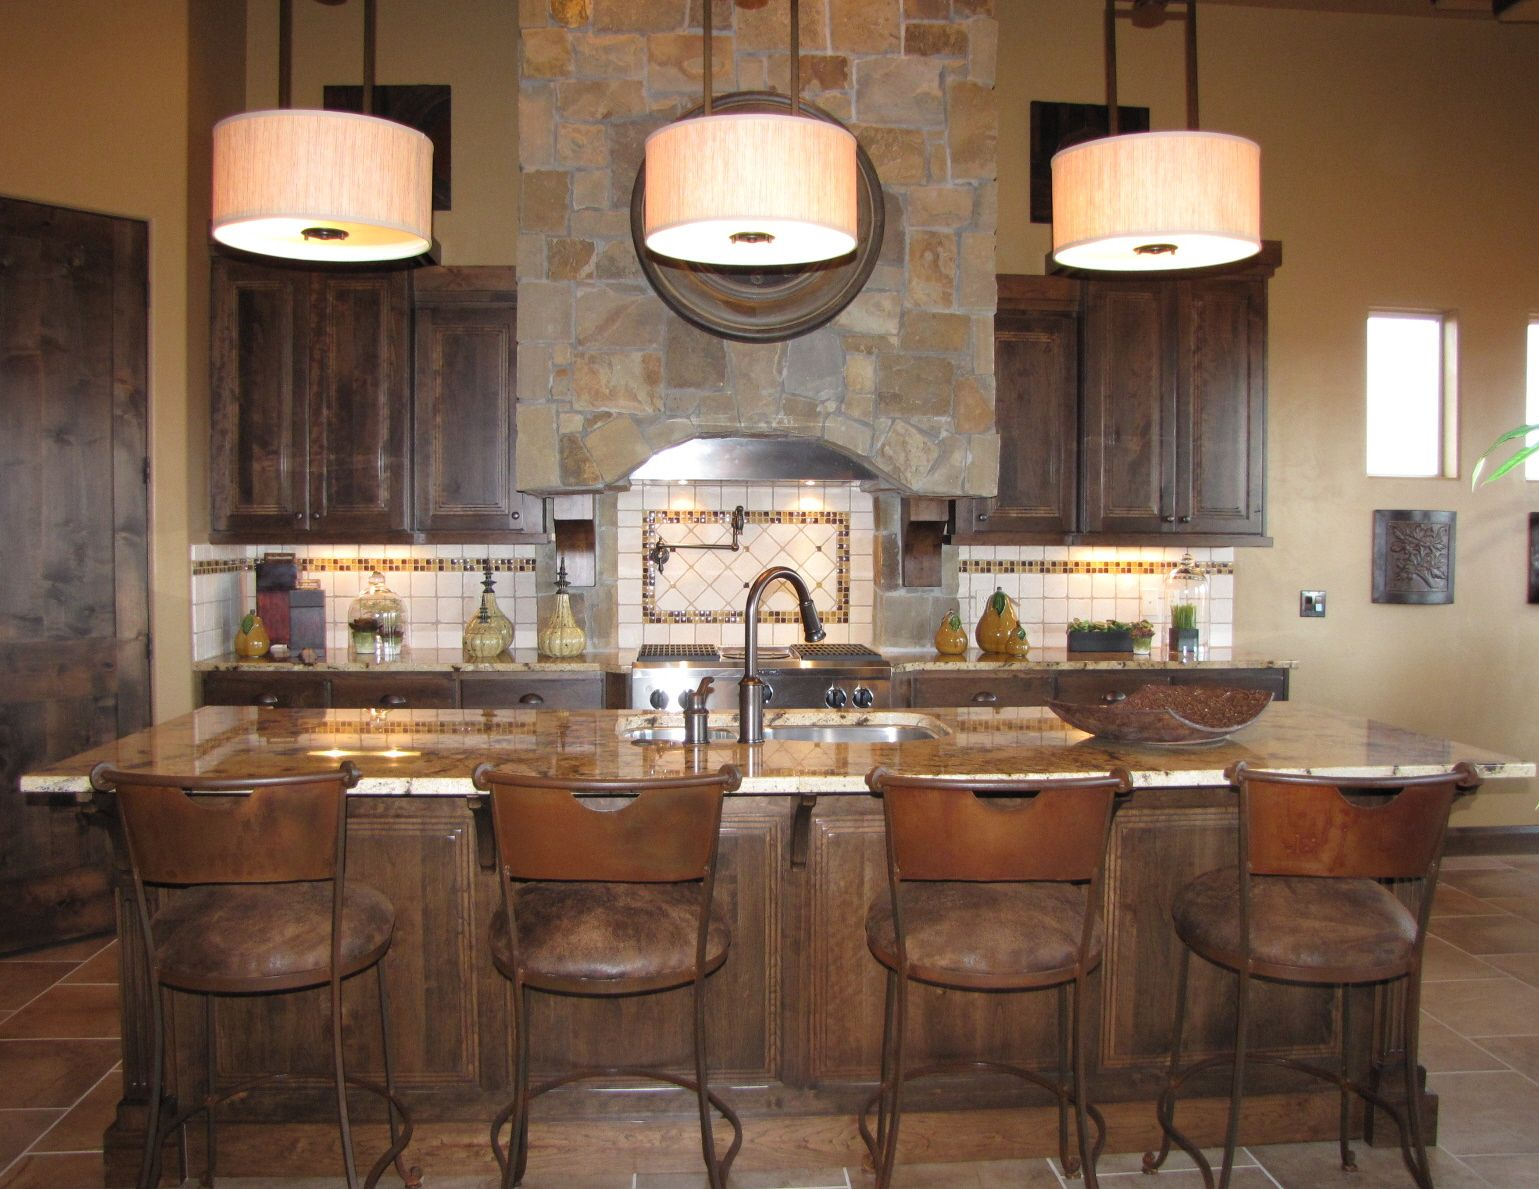 Pin By Venuti Woodworking On Rustic Southwest Kitchen Design Decor Kitchen Cabinet Styles Kitchen Styling